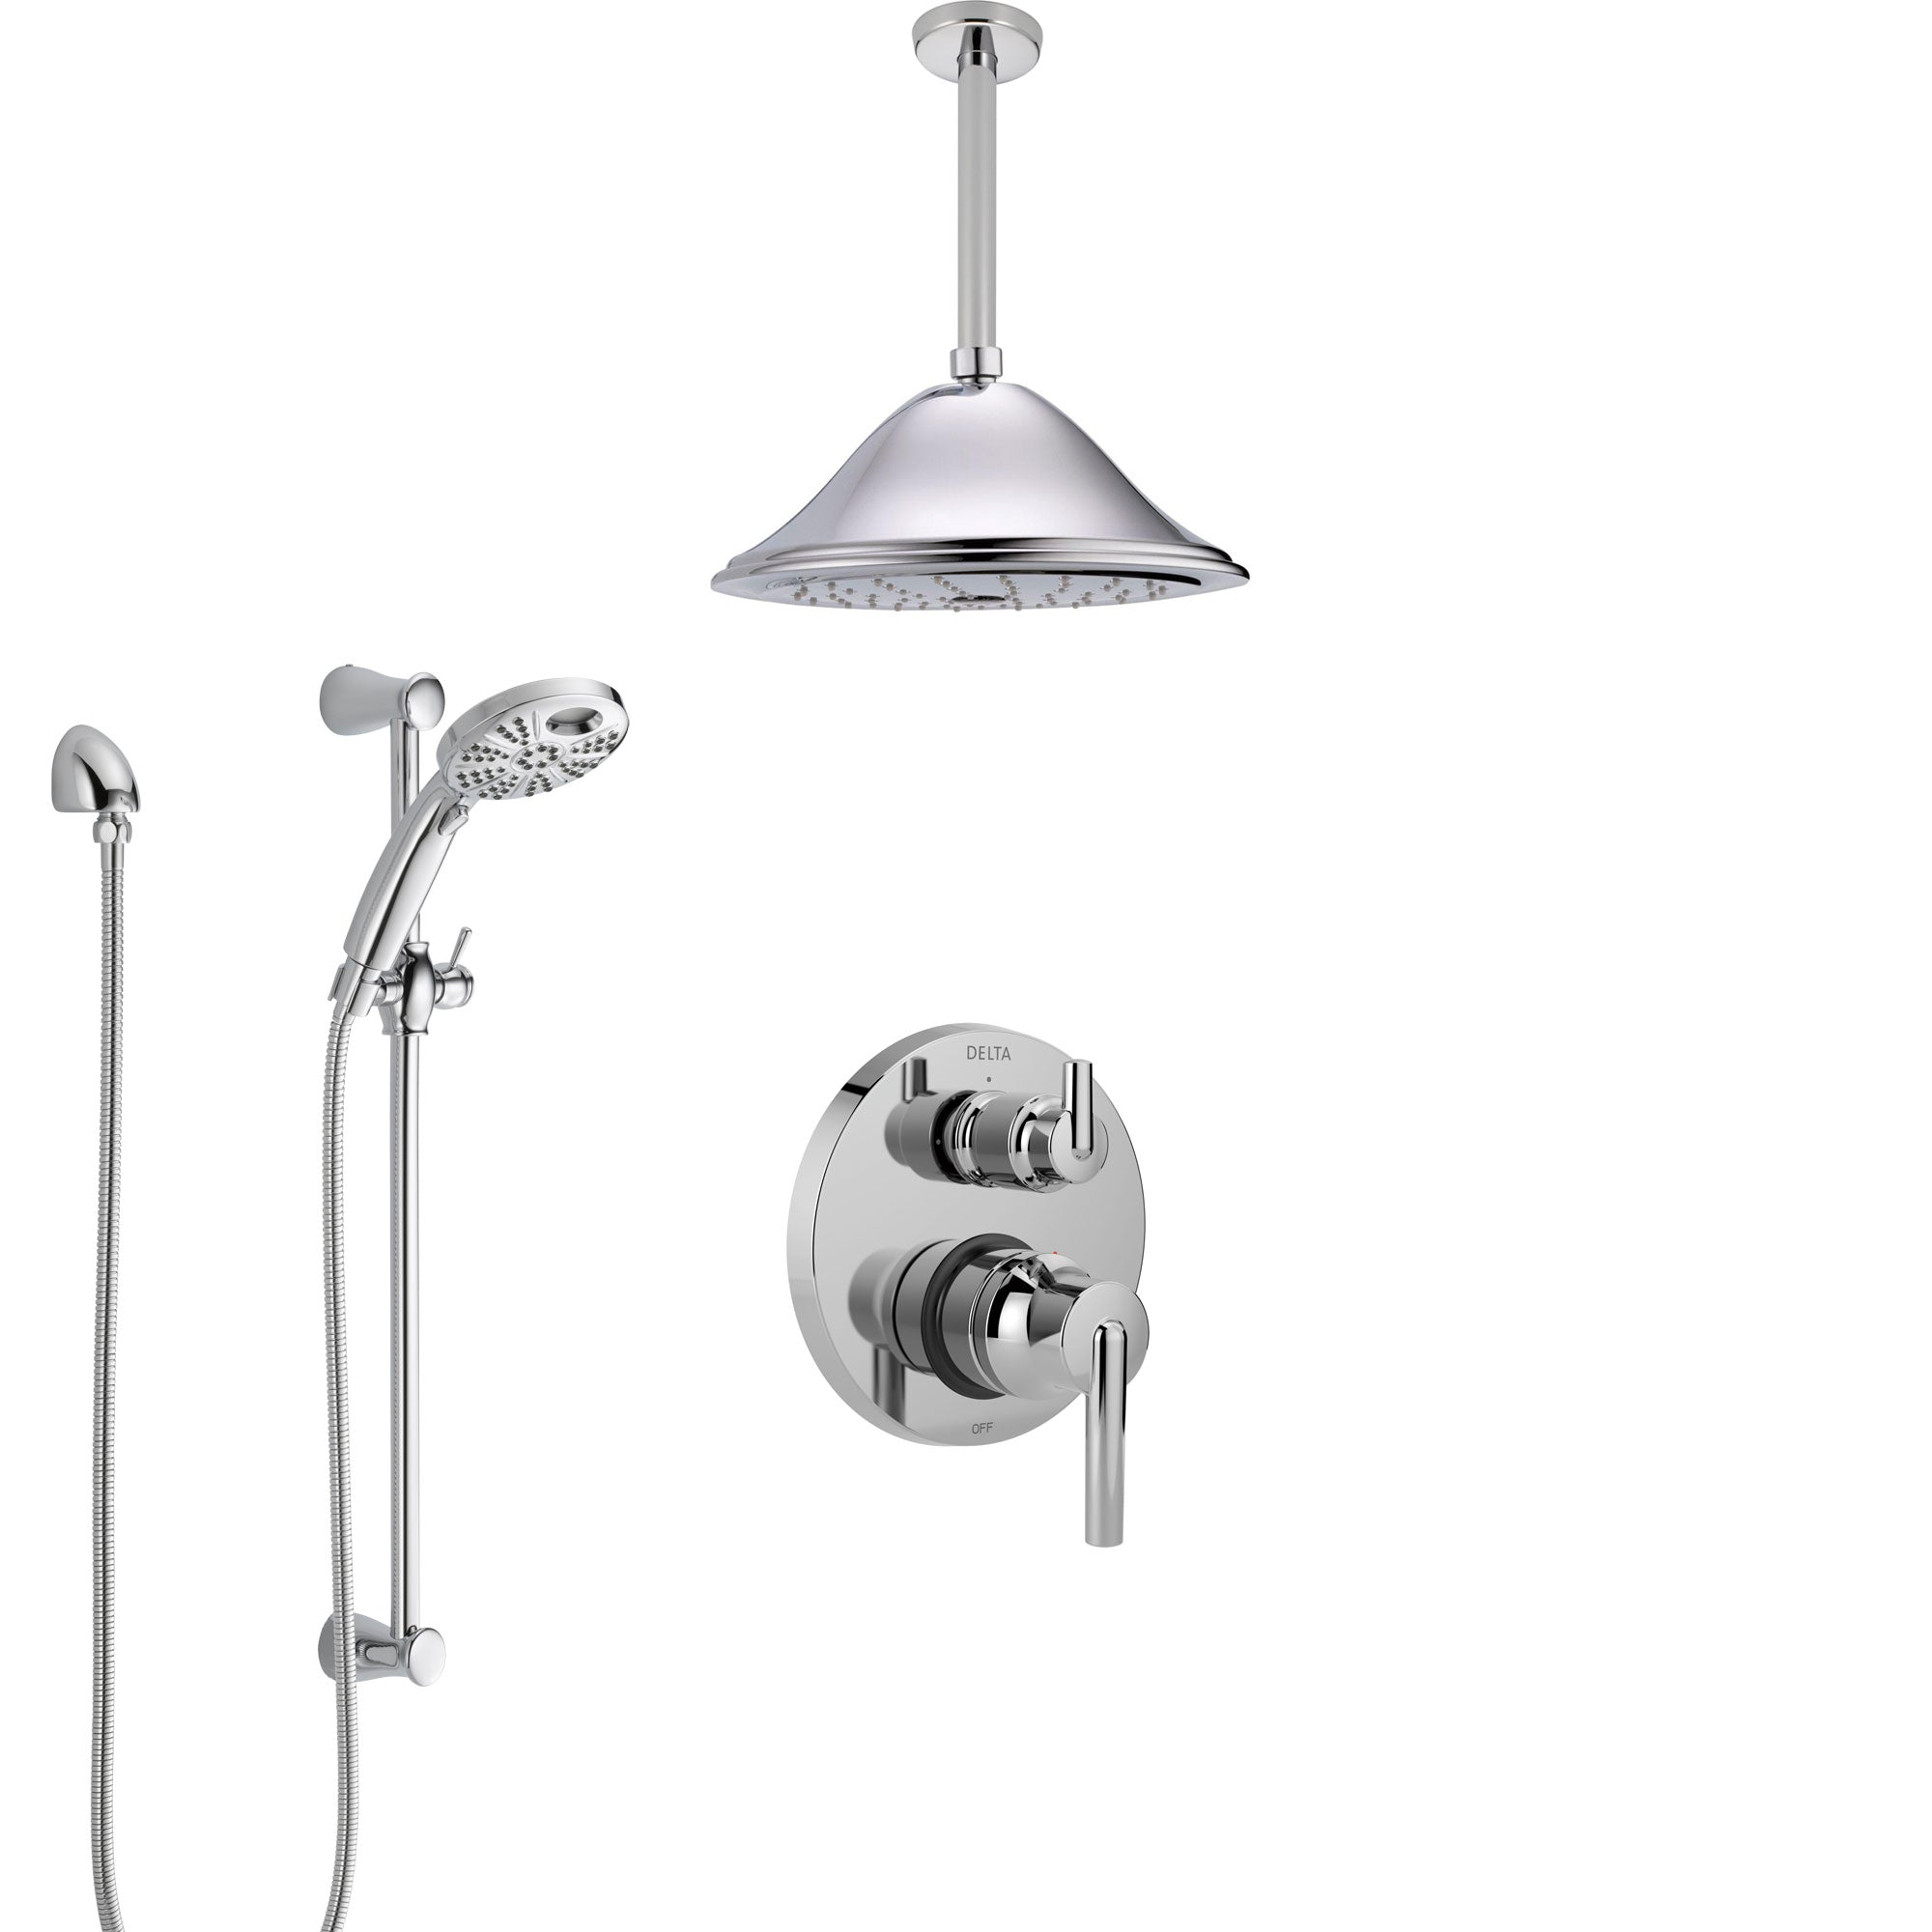 Delta Trinsic Chrome Finish Shower System with Integrated Diverter, Ceiling Mount Showerhead, and Temp2O Hand Shower with Slidebar SS248593